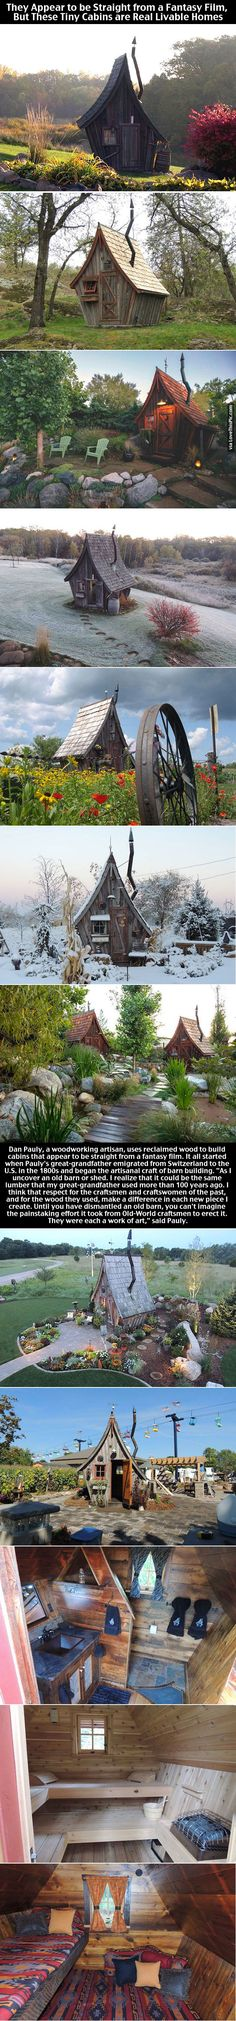 They Appear to be Straight from a Fantasy Film, But These Tiny Cabins are Real Livable Homes home architecture interesting home ideas home design tiny homes architecture ideas architecture projects architecture and design